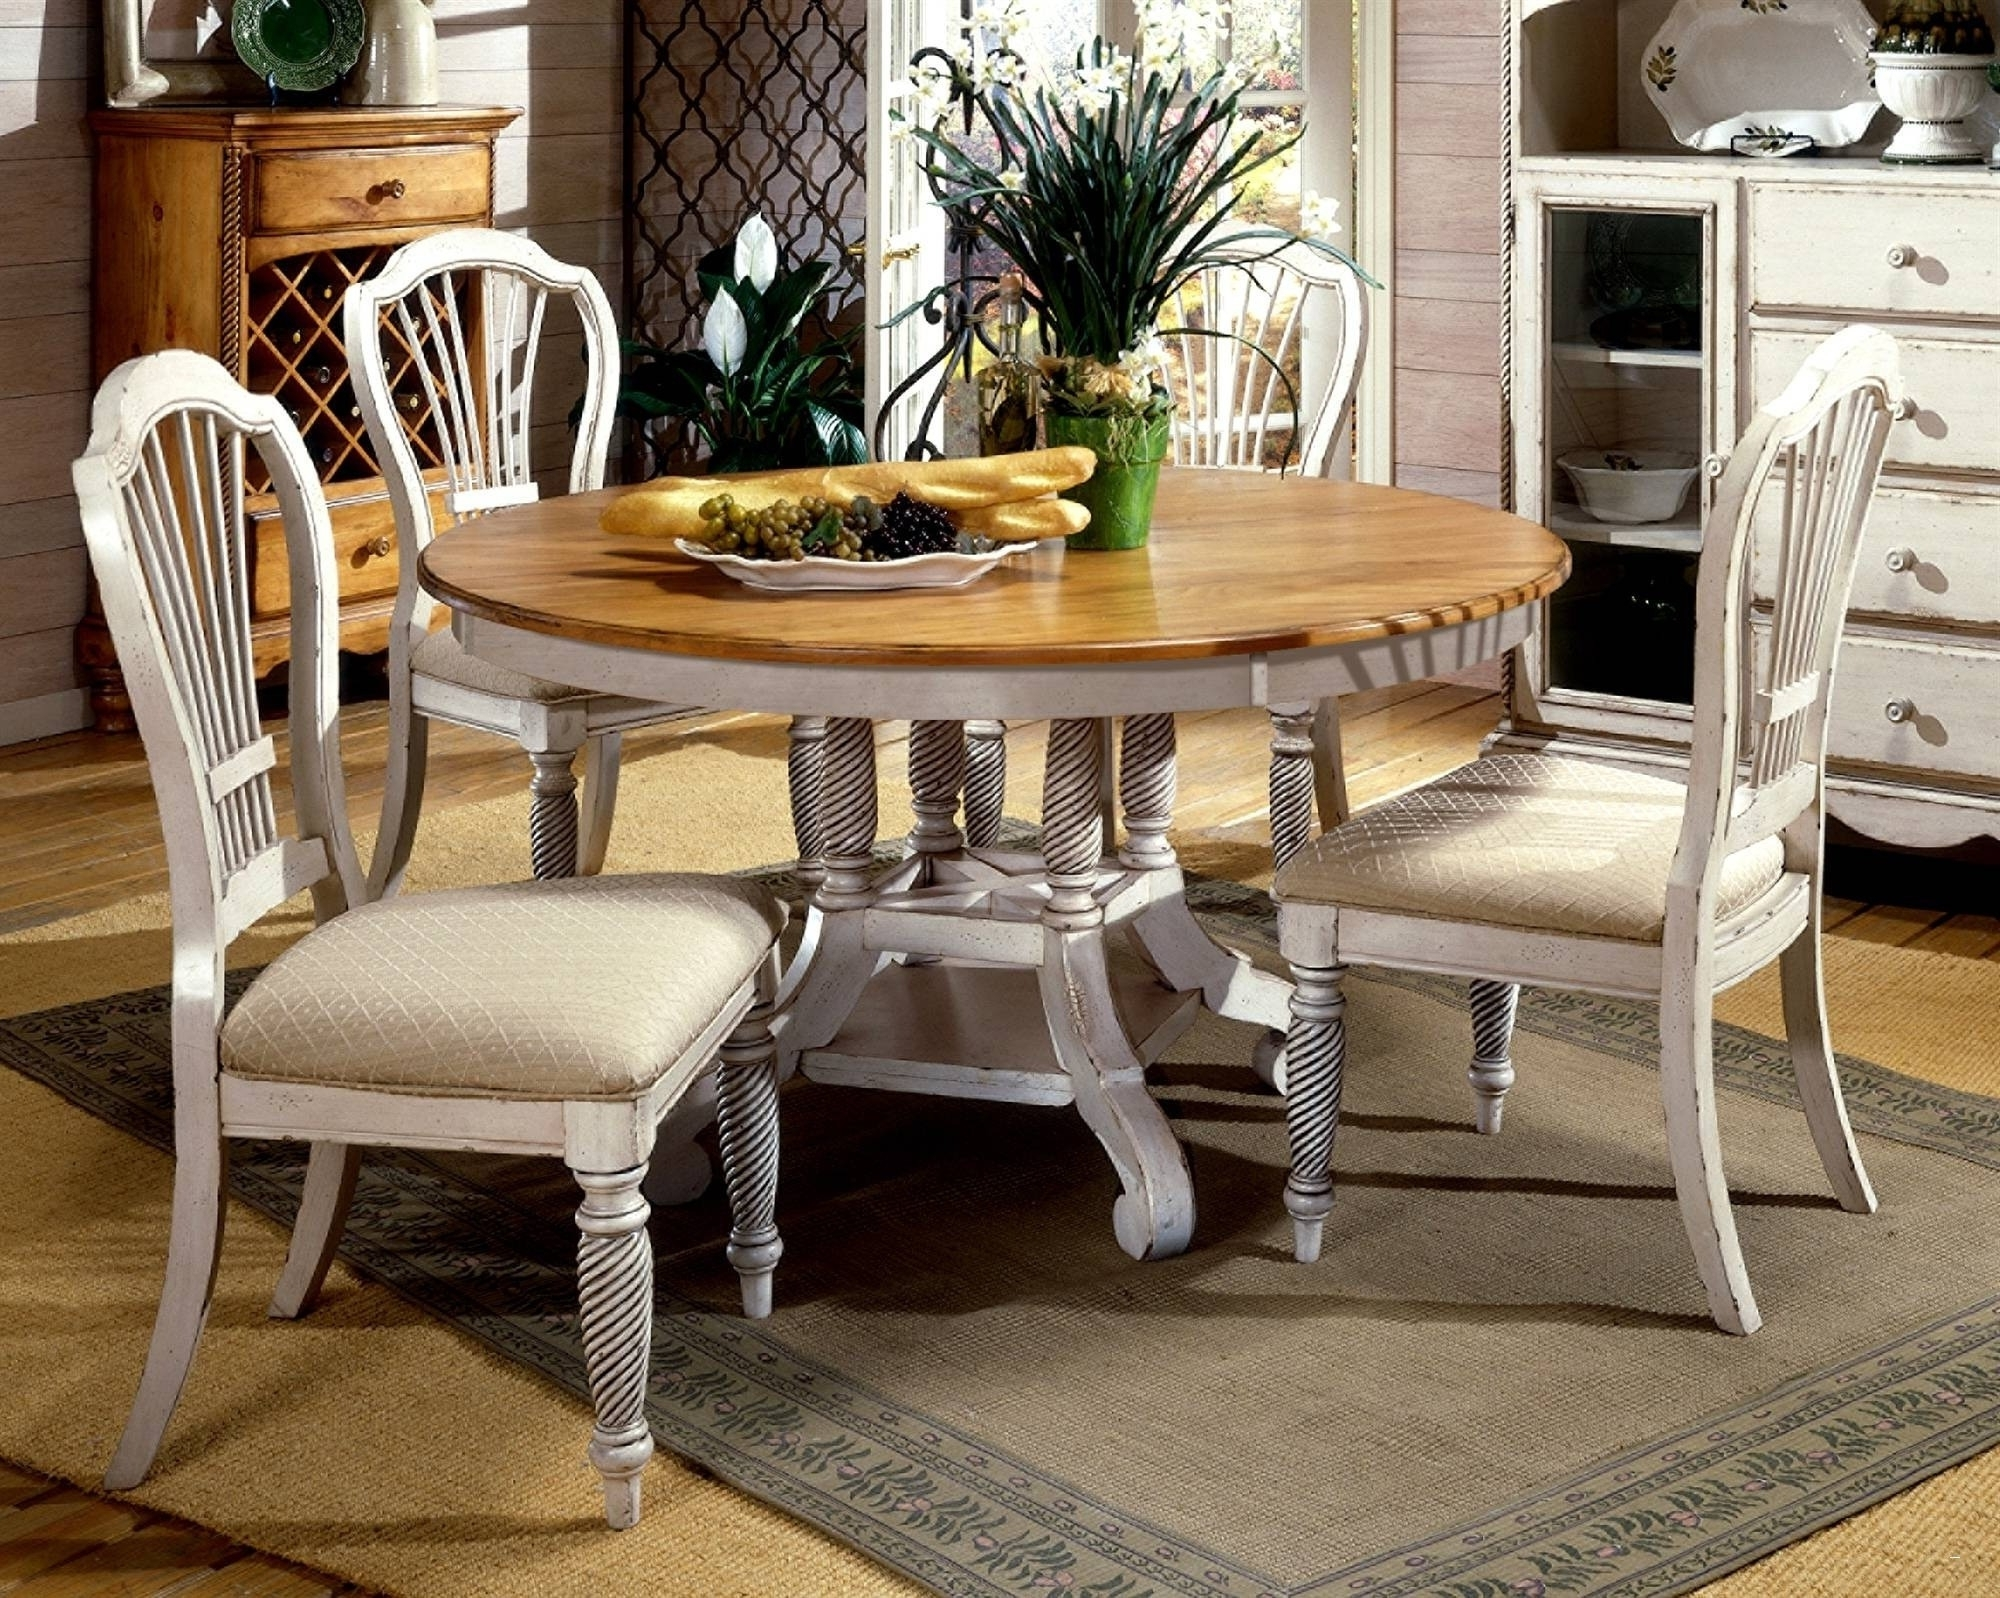 Deals On Dining Table And Chairs Luxury Fabulous Cheap Dining Table Inside Well Liked Cheap Dining Tables And Chairs (View 22 of 25)